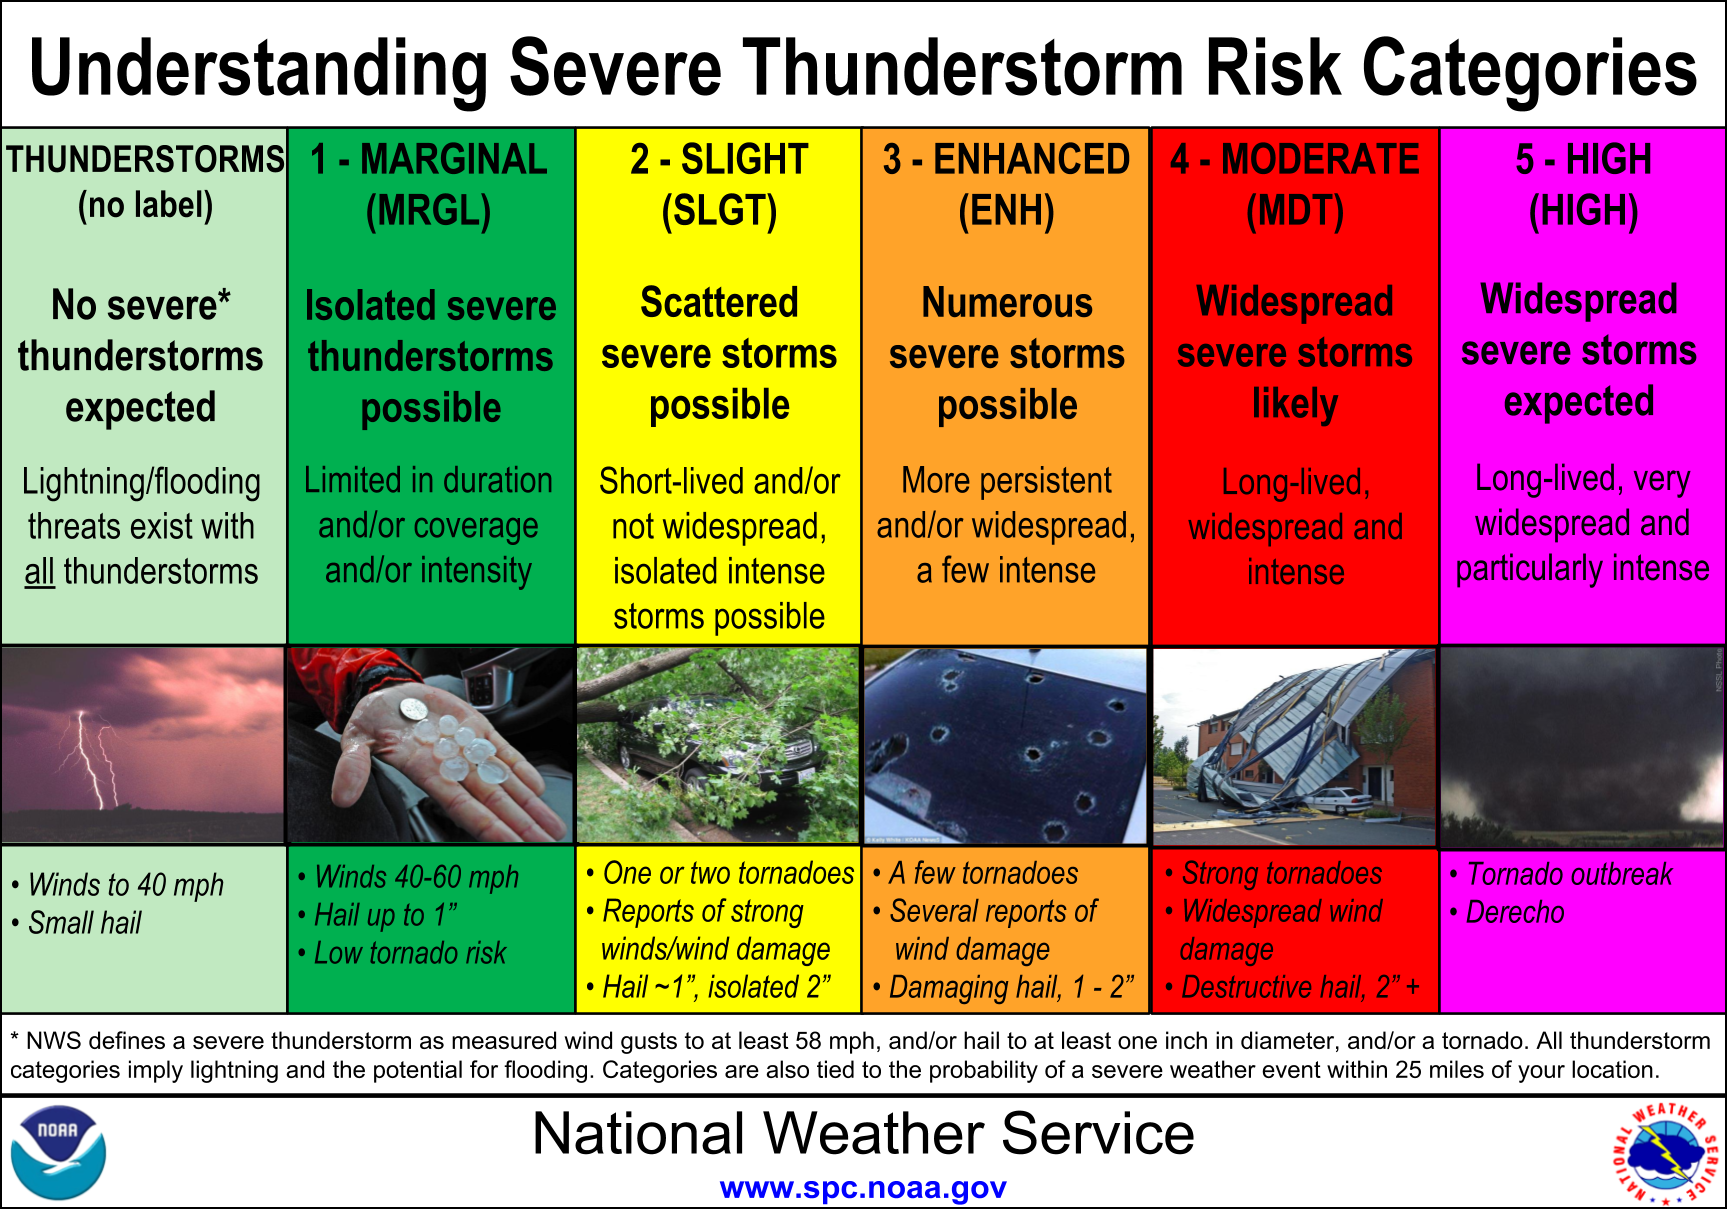 This Is What The National Weather Service Color Coding Means On